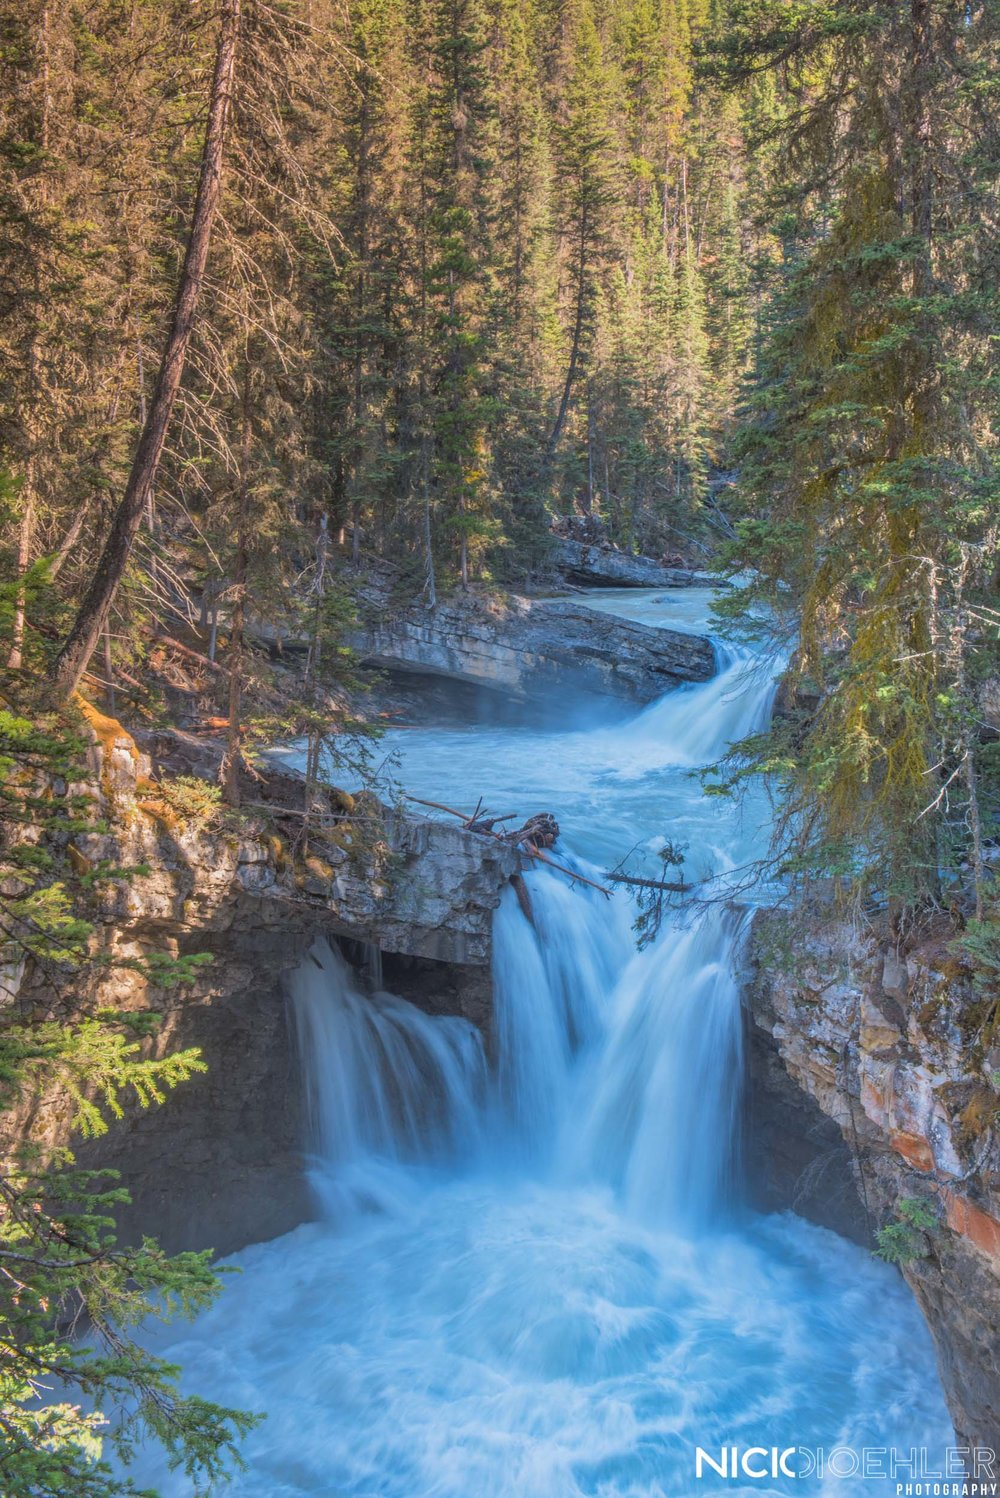 Banff National Park: A waterfall making way through a forest.